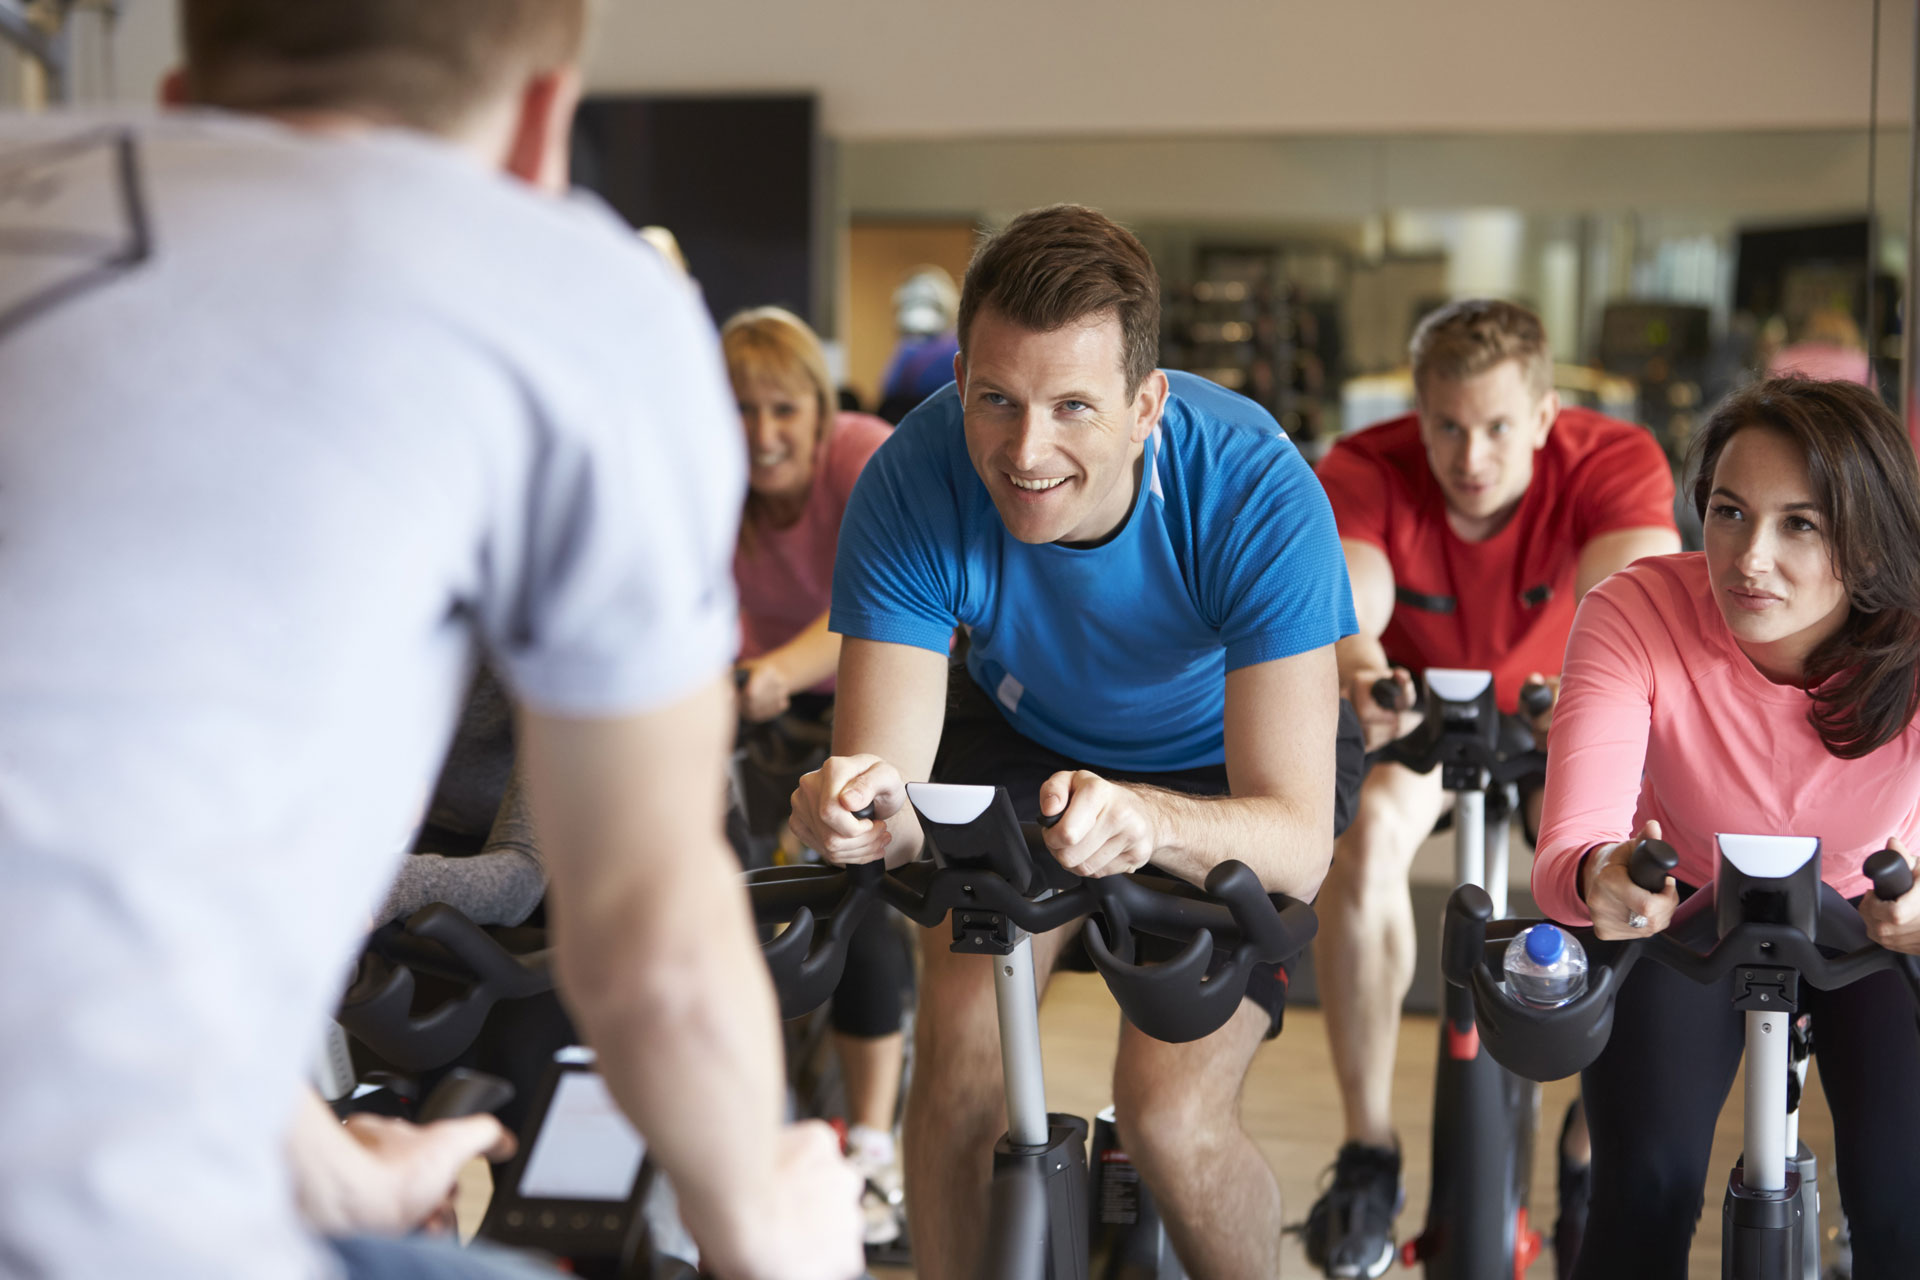 SPINNING Y CICLISMO: ¿SI O NO?